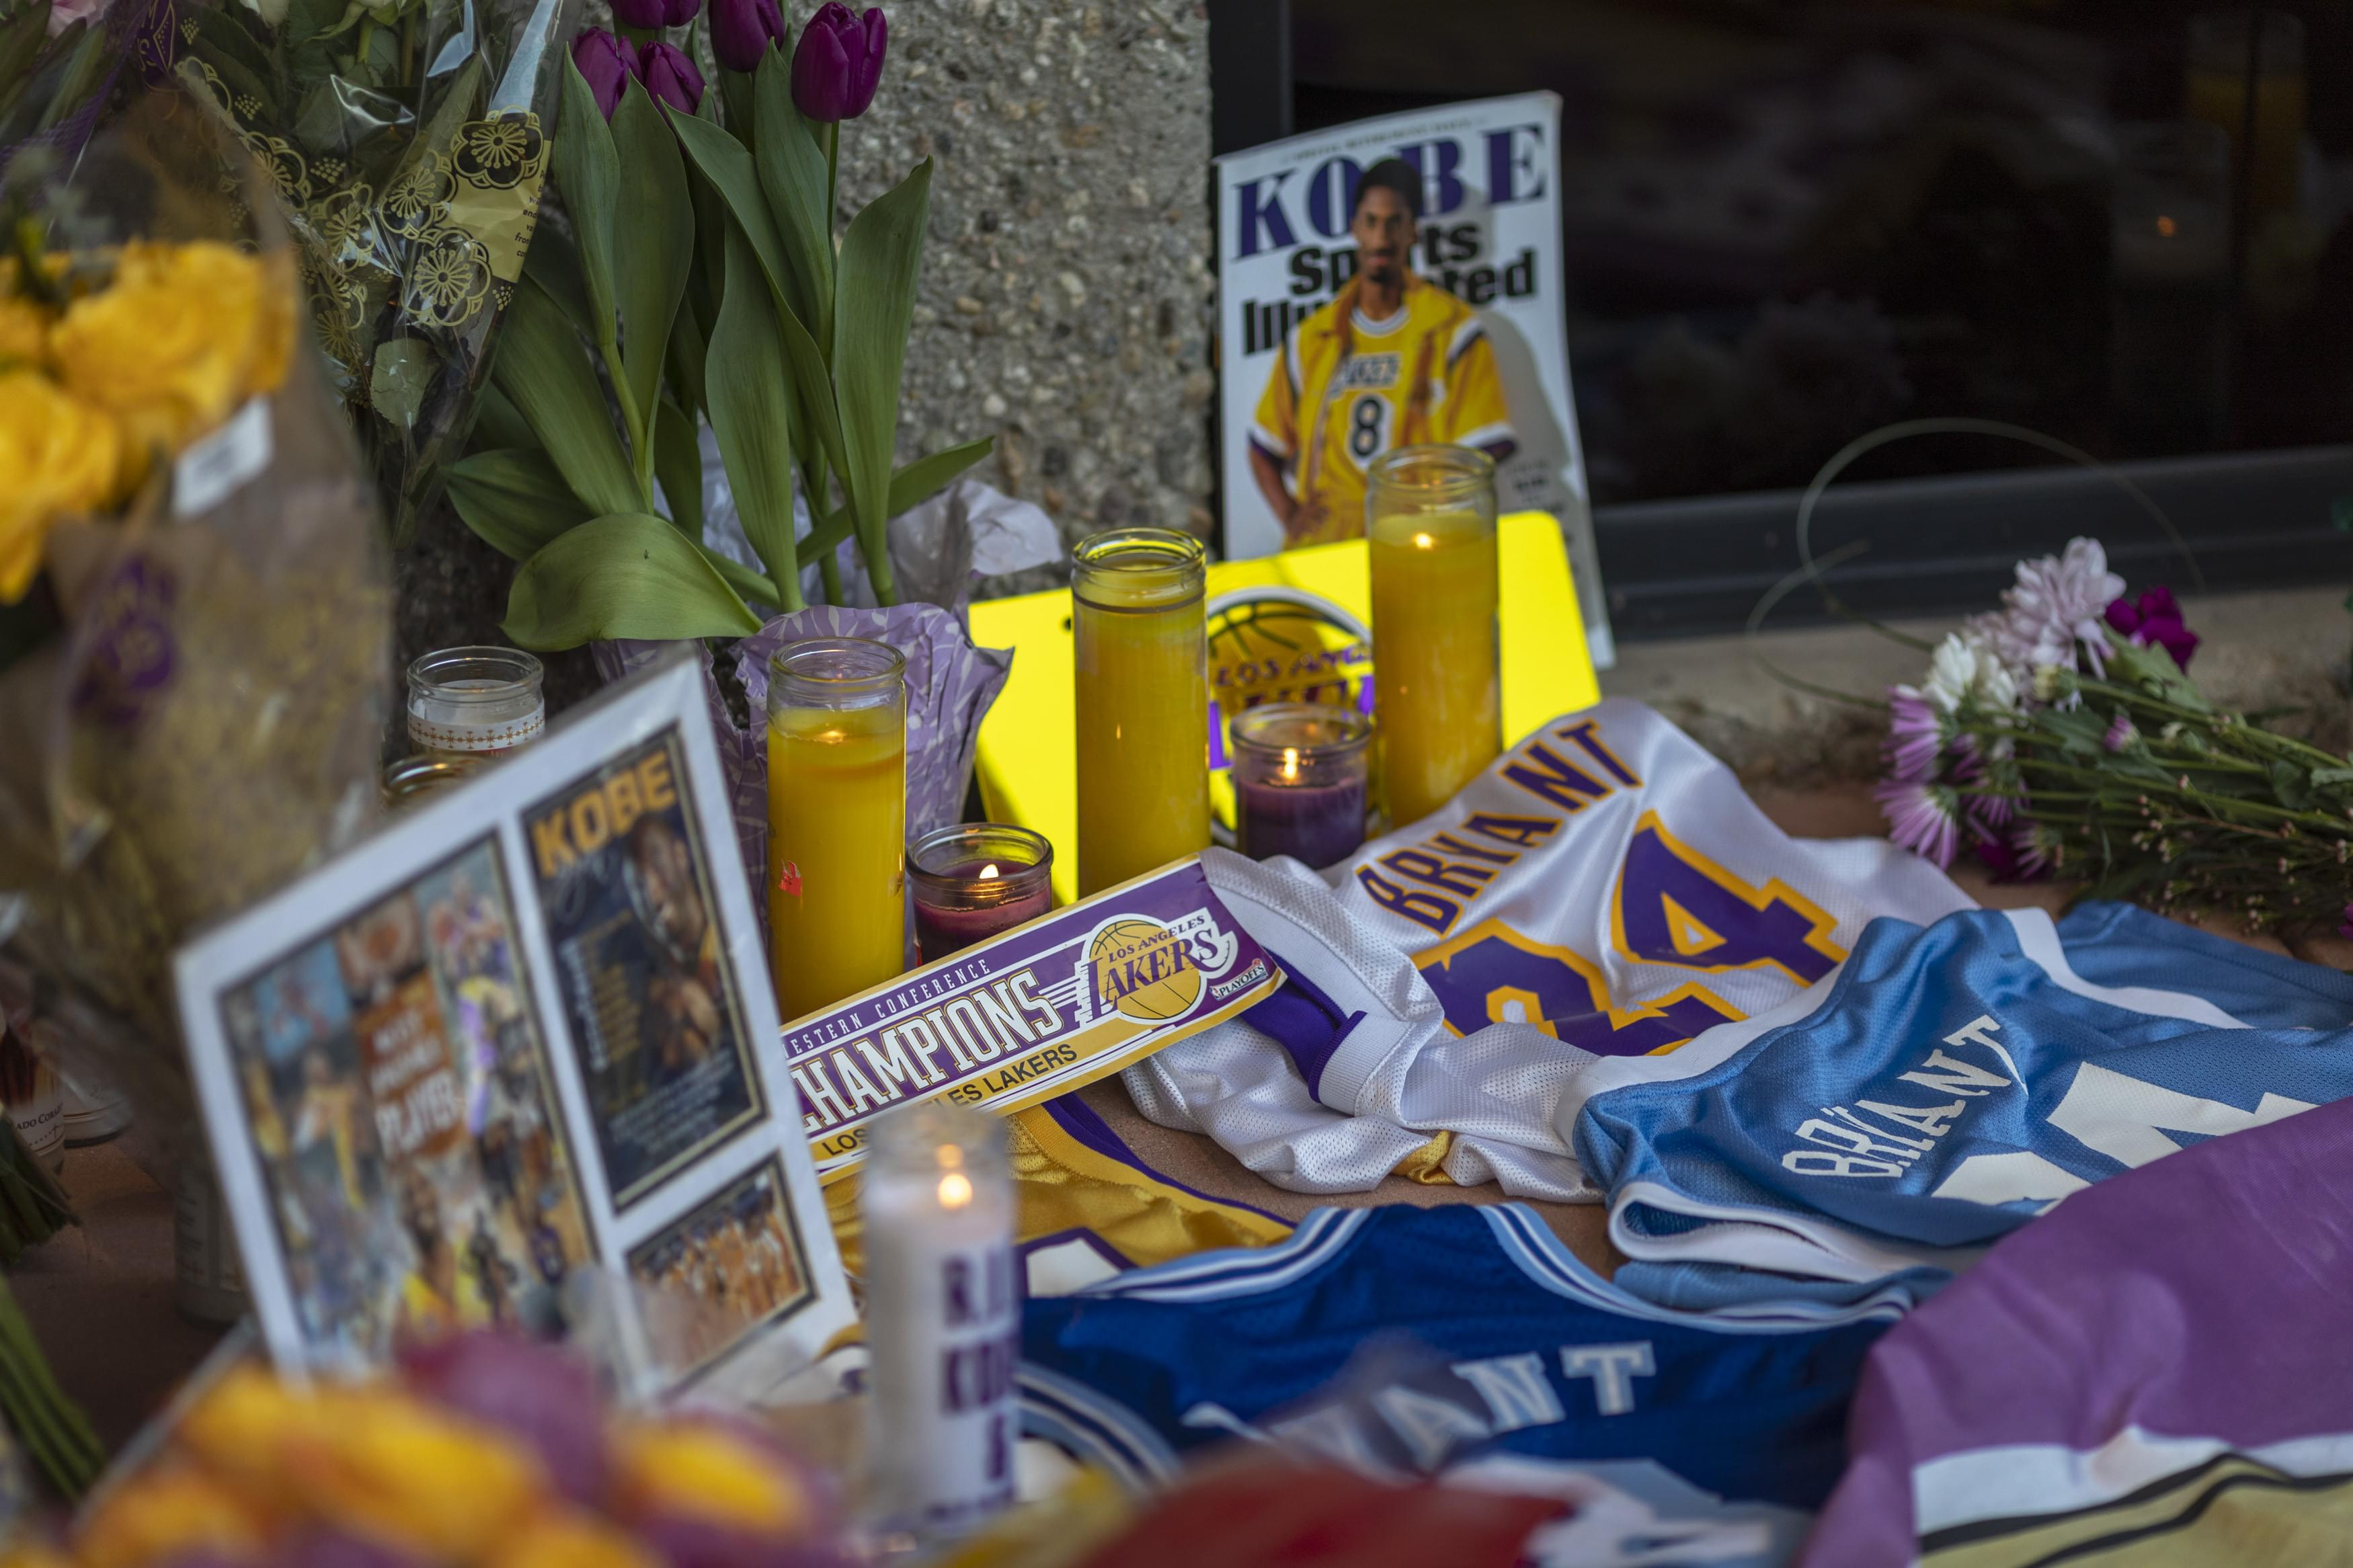 All 9 Victims In Kobe Bryant Helicopter Crash Have Been Identified